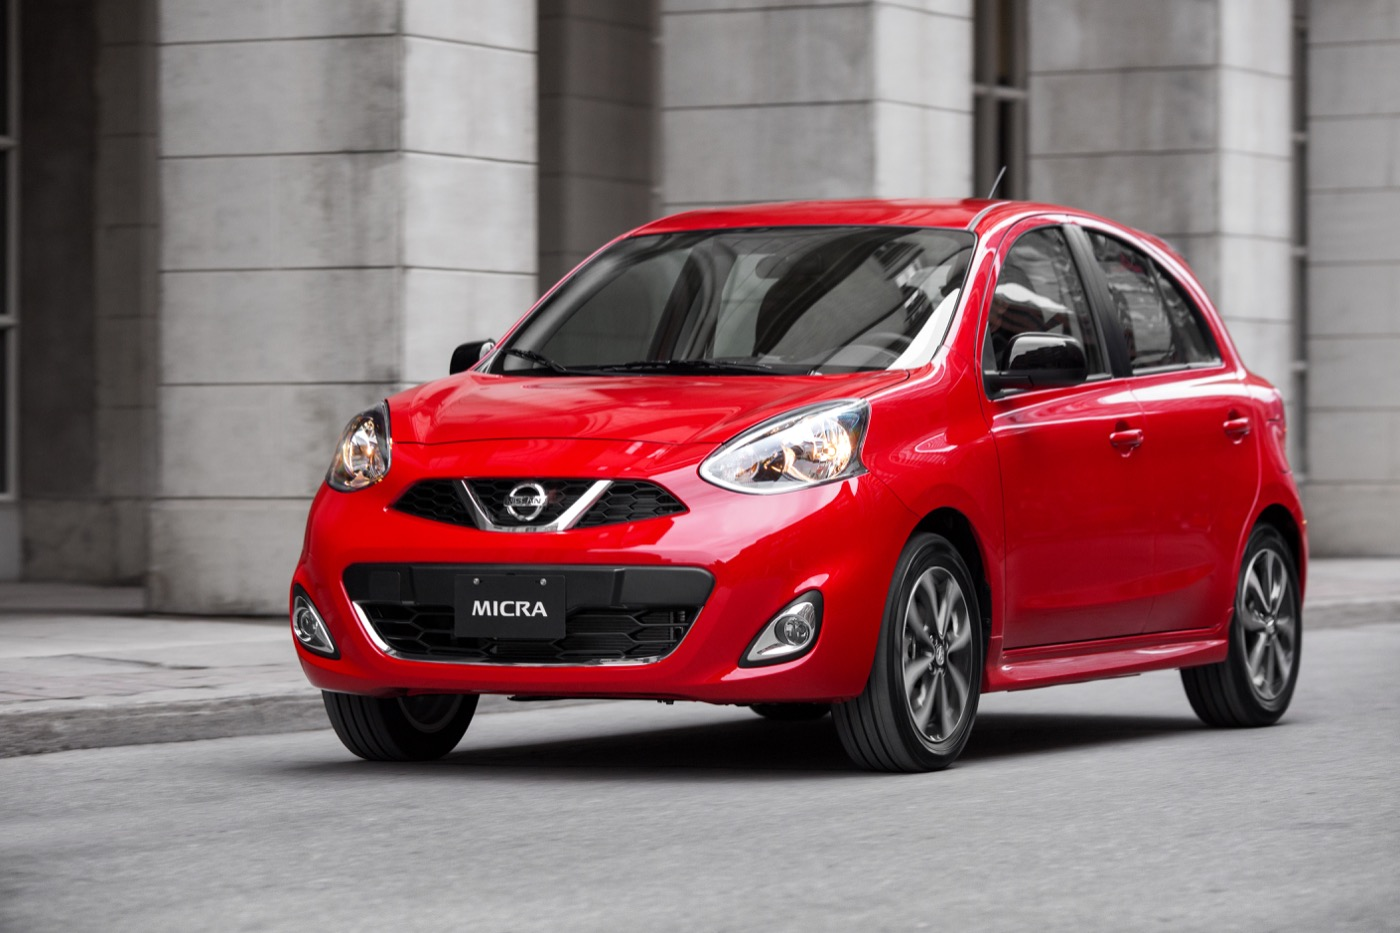 New Nissan Micra No But The Old Micra Will Stick Around